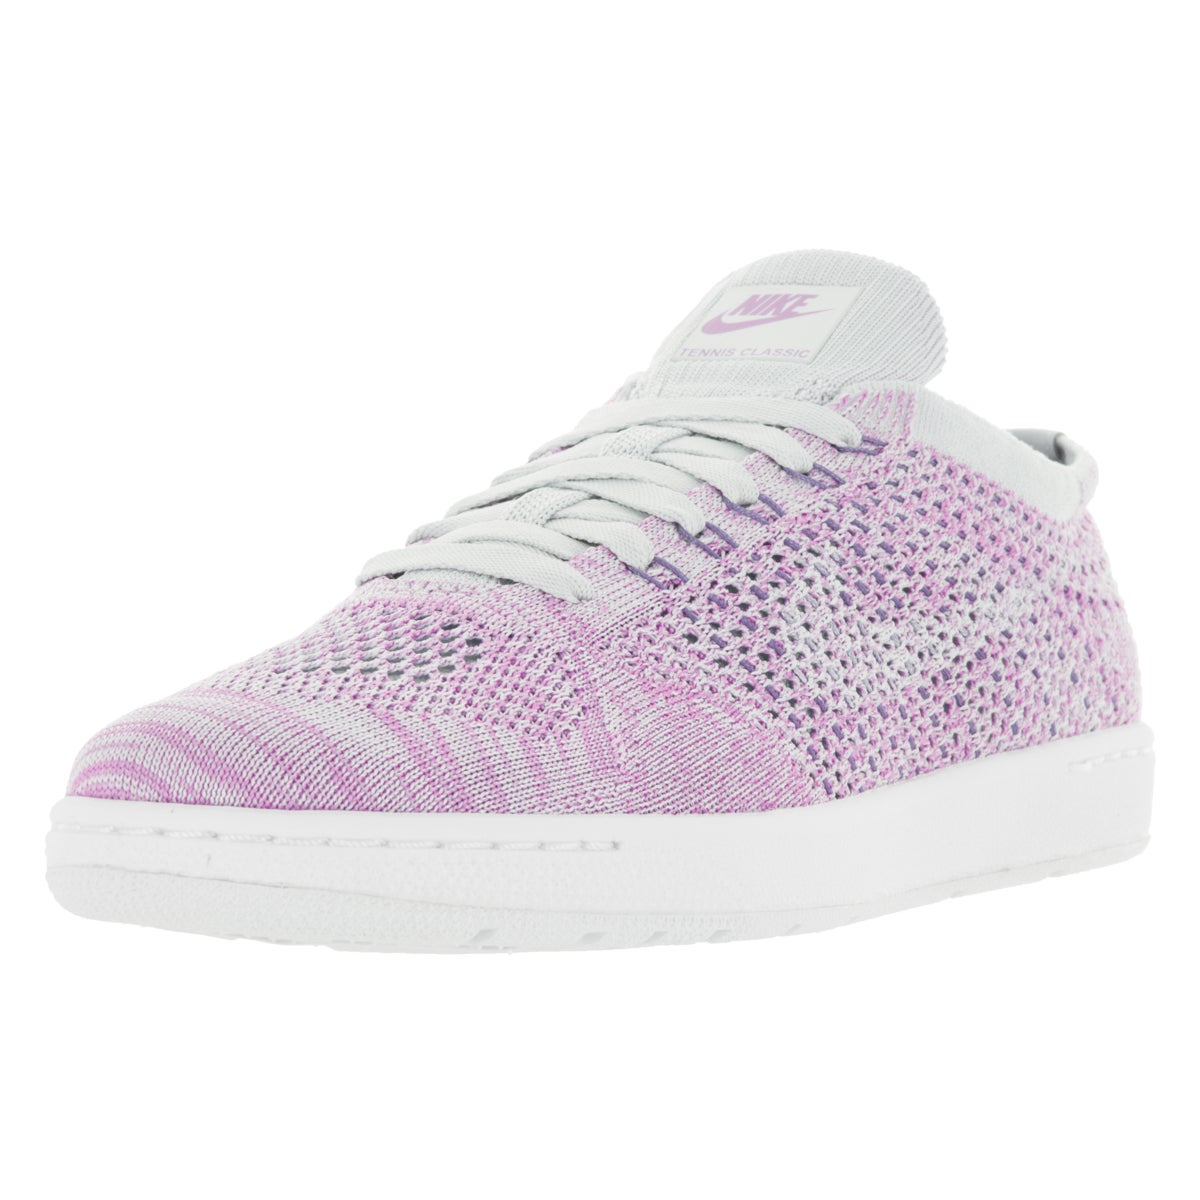 Nike Women's Tennis Classic Ultra Flyknit Purple and Whit...